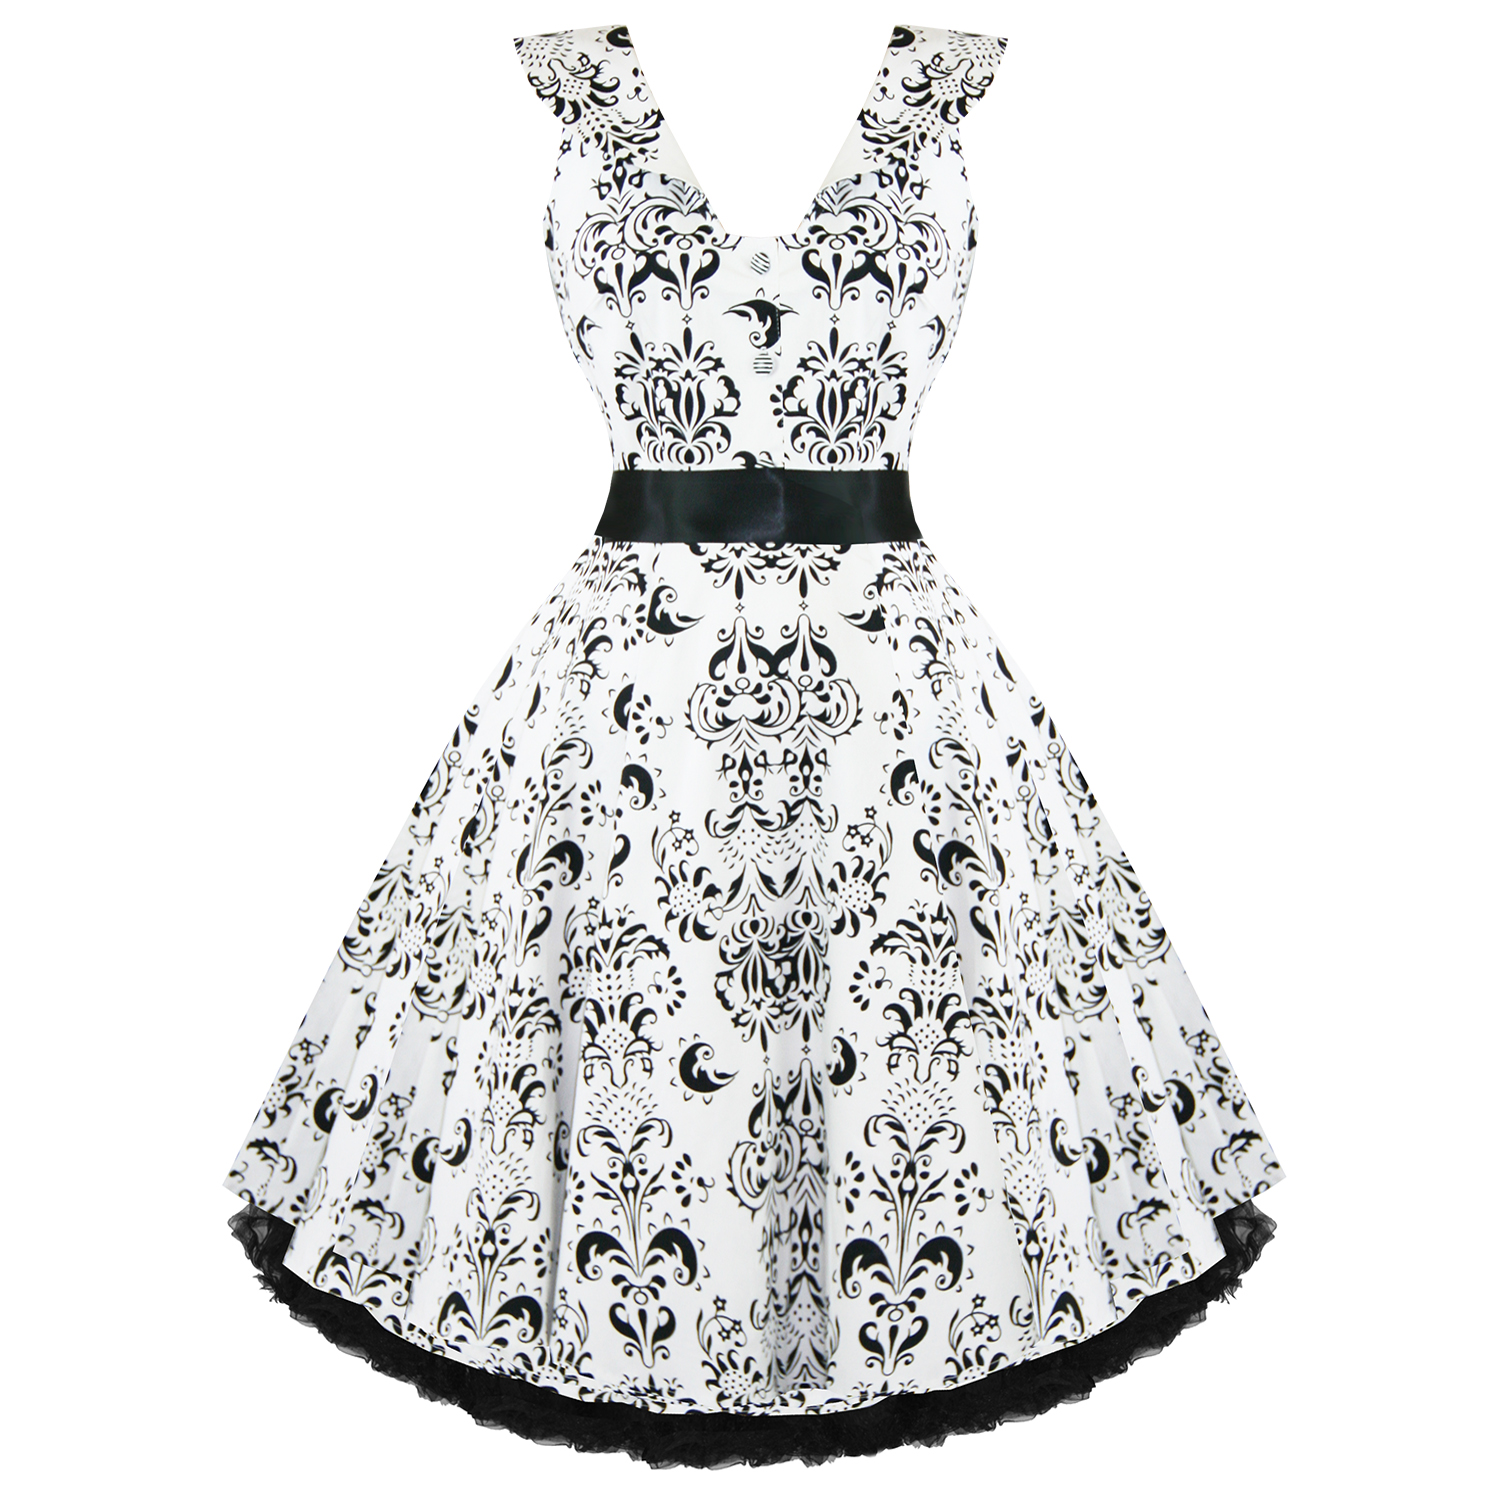 RKH11-Hearts-amp-Roses-Damask-White-Sleeveless-Rockabilly-Dress-50-039-s-Vintage-Swing